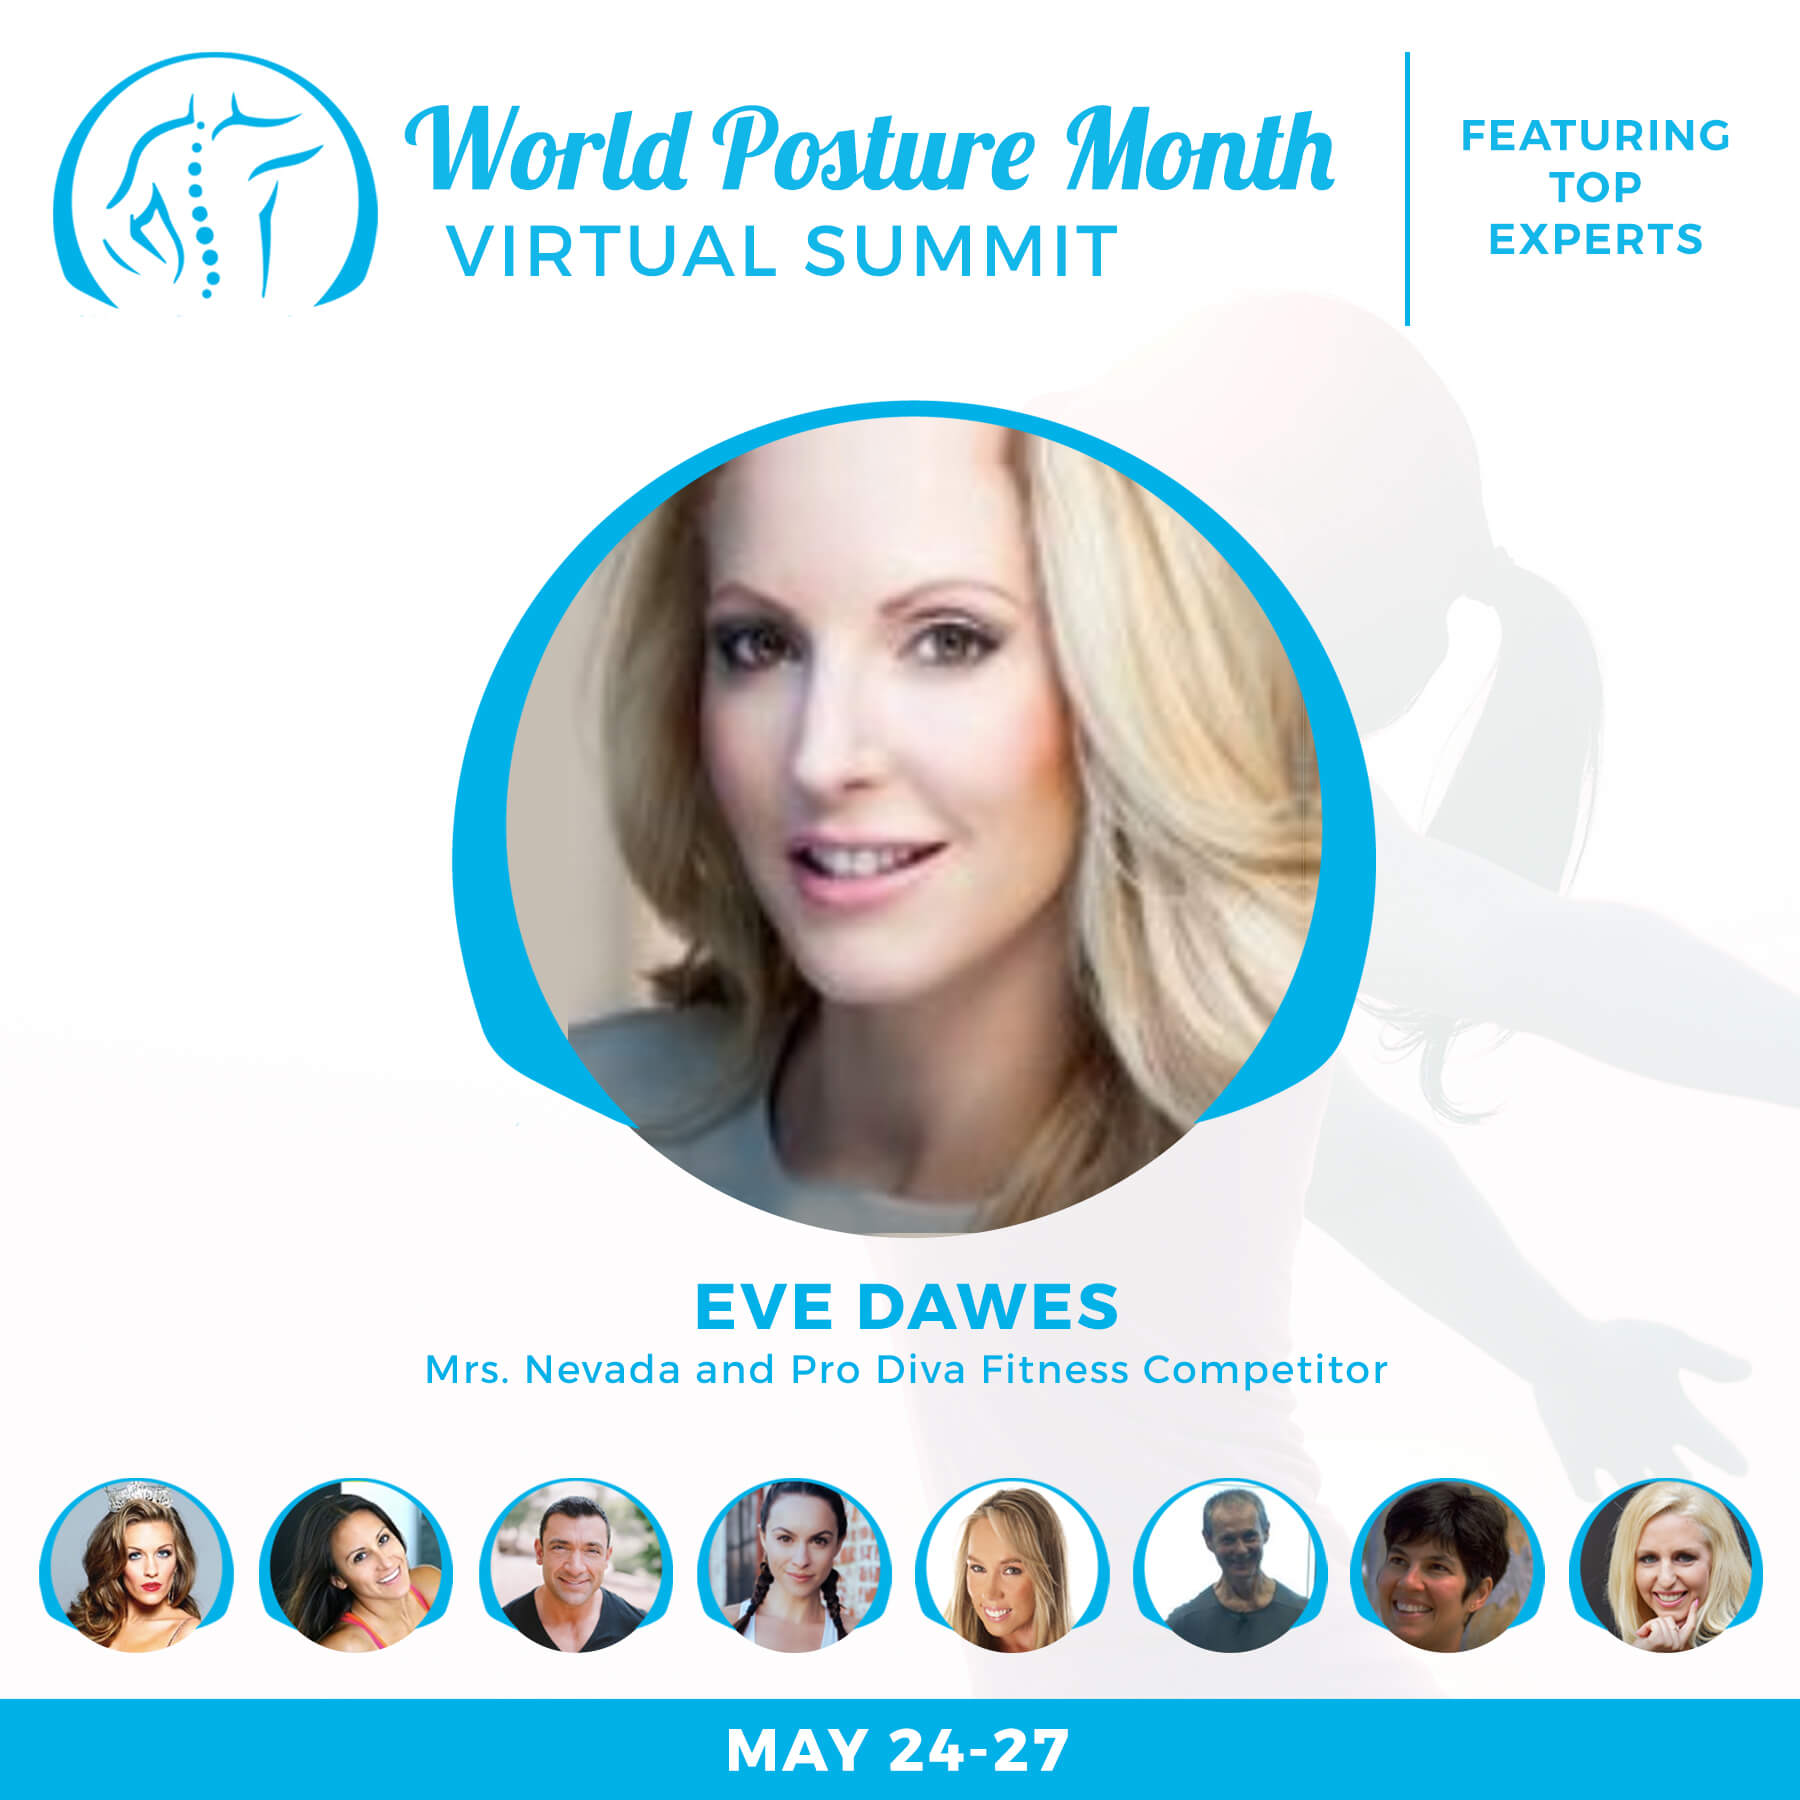 World Posture Month Virtual Summit 2018 Presenters.